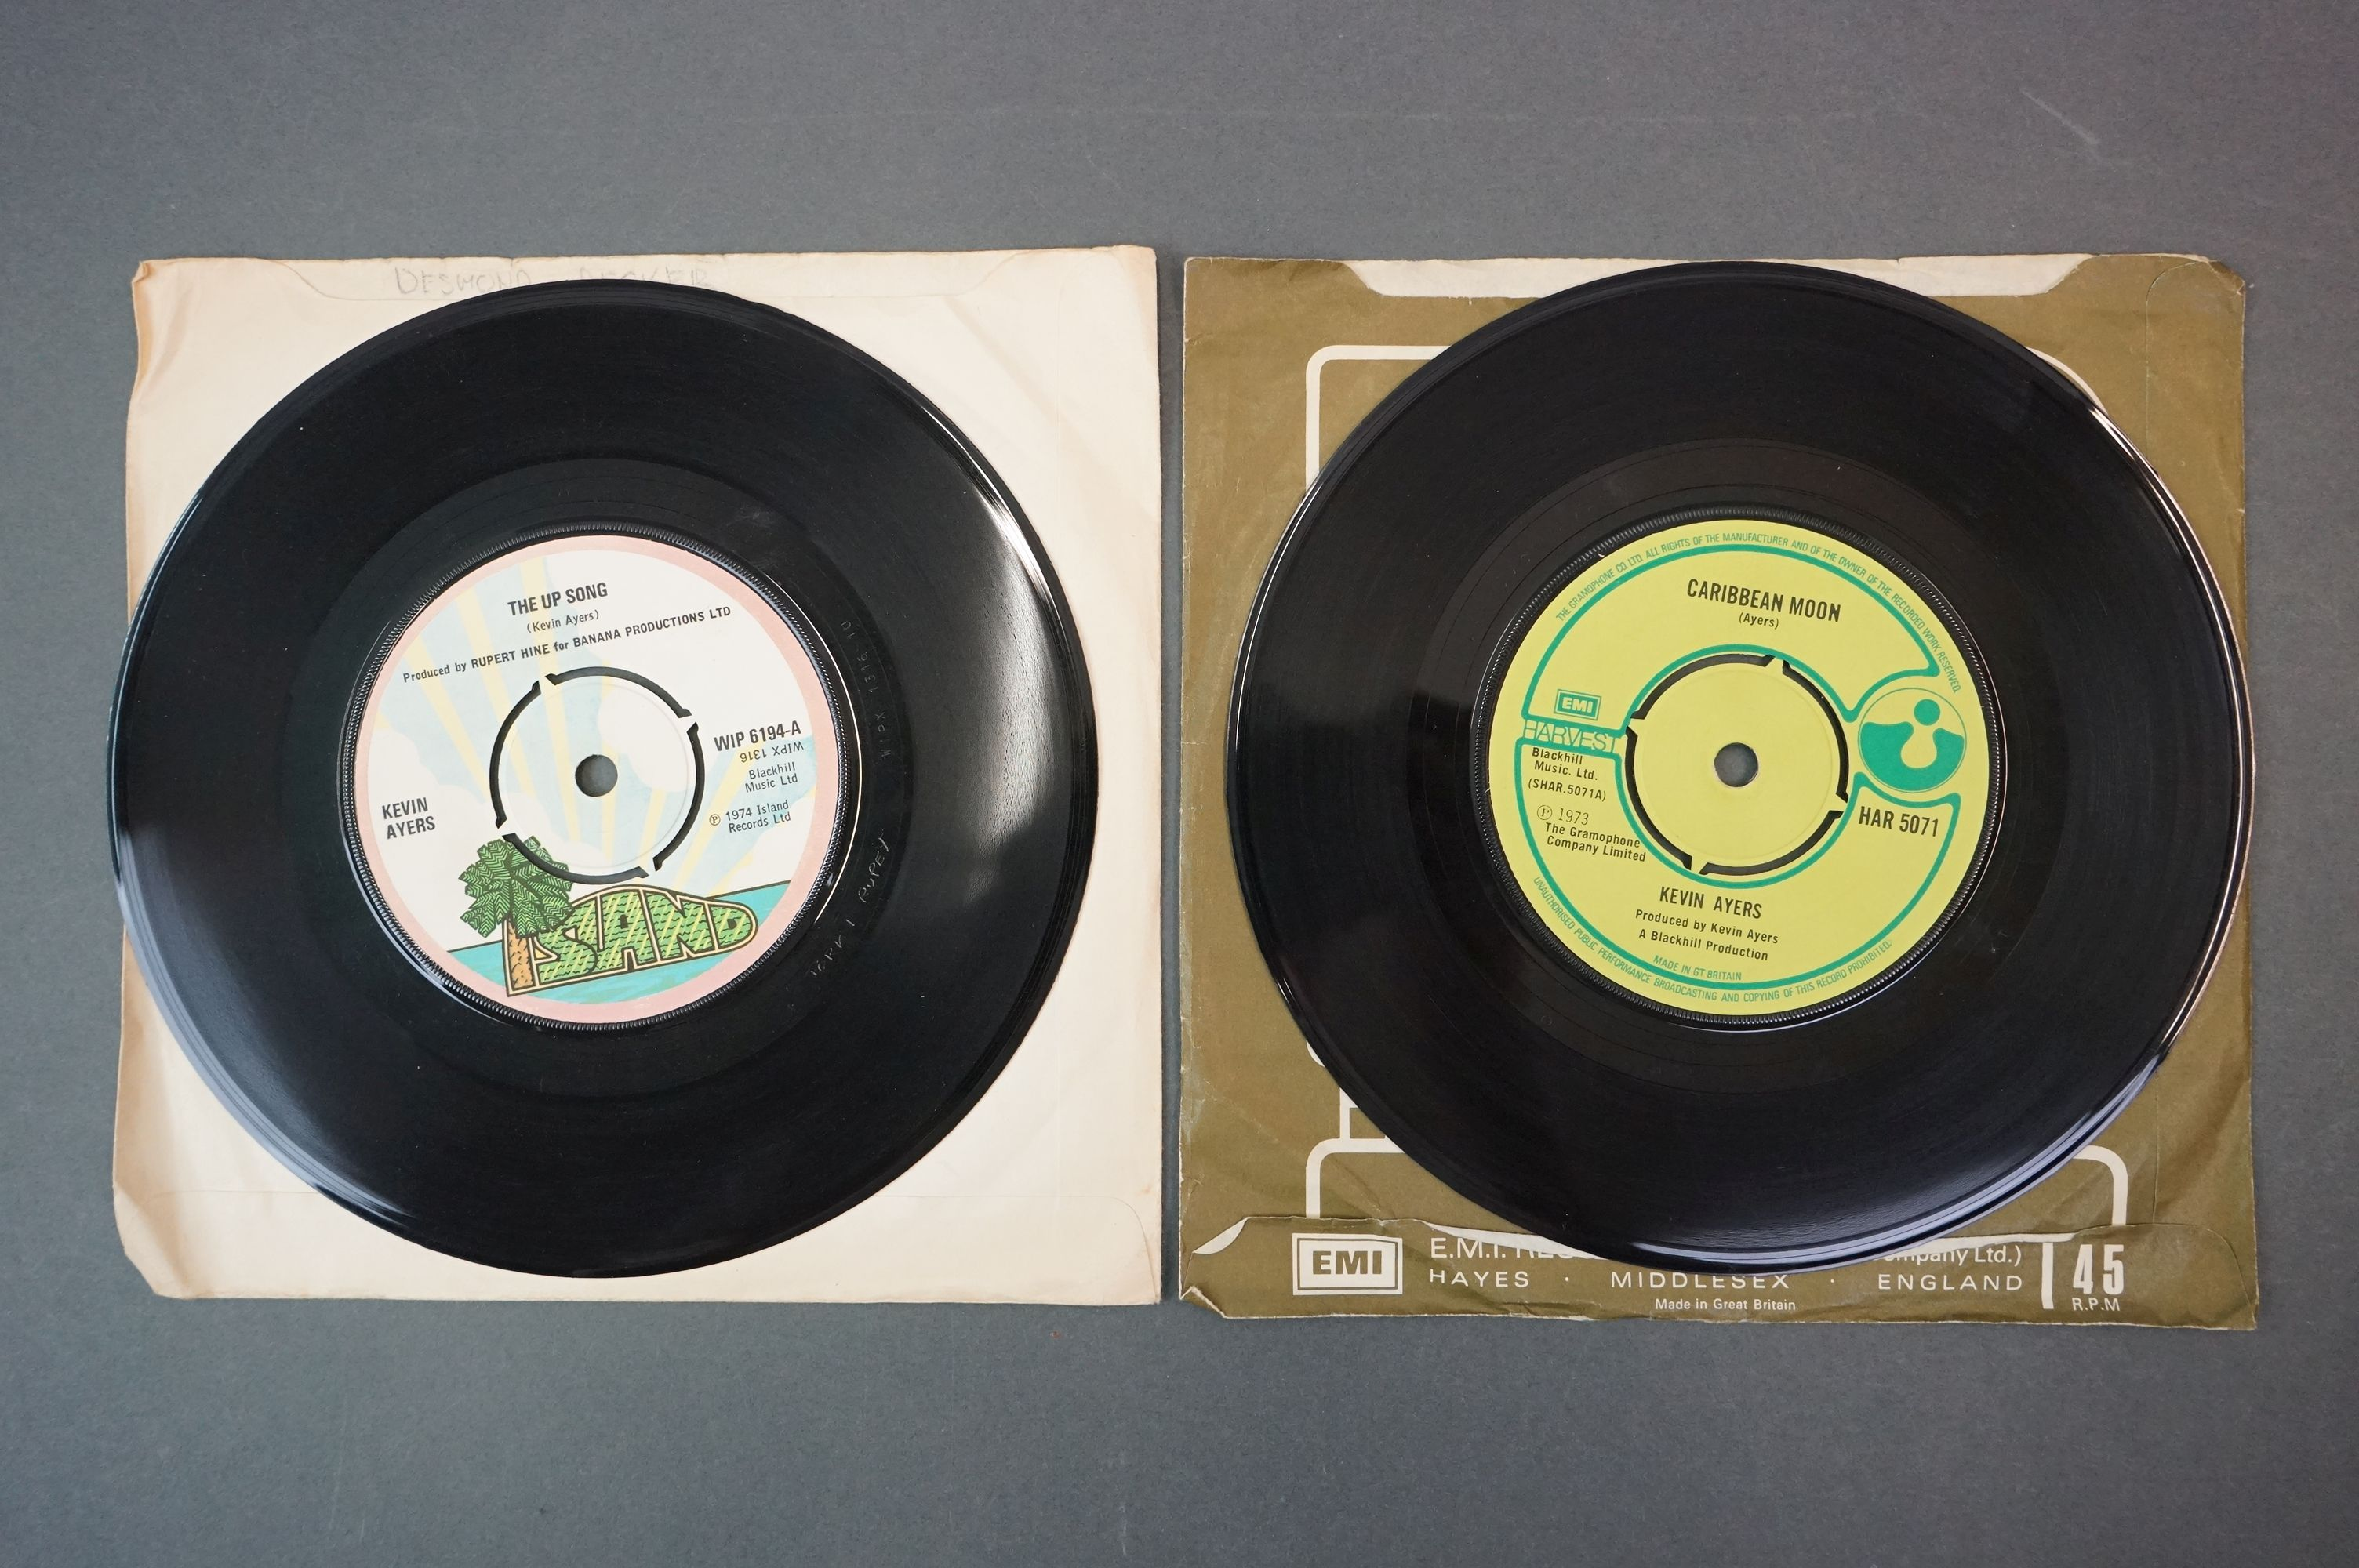 Vinyl - Kevin Ayers 1 LP The Confessions Of Dr Dream (ILPS 9263) lyric inner plus 7 inch singles - Image 4 of 5